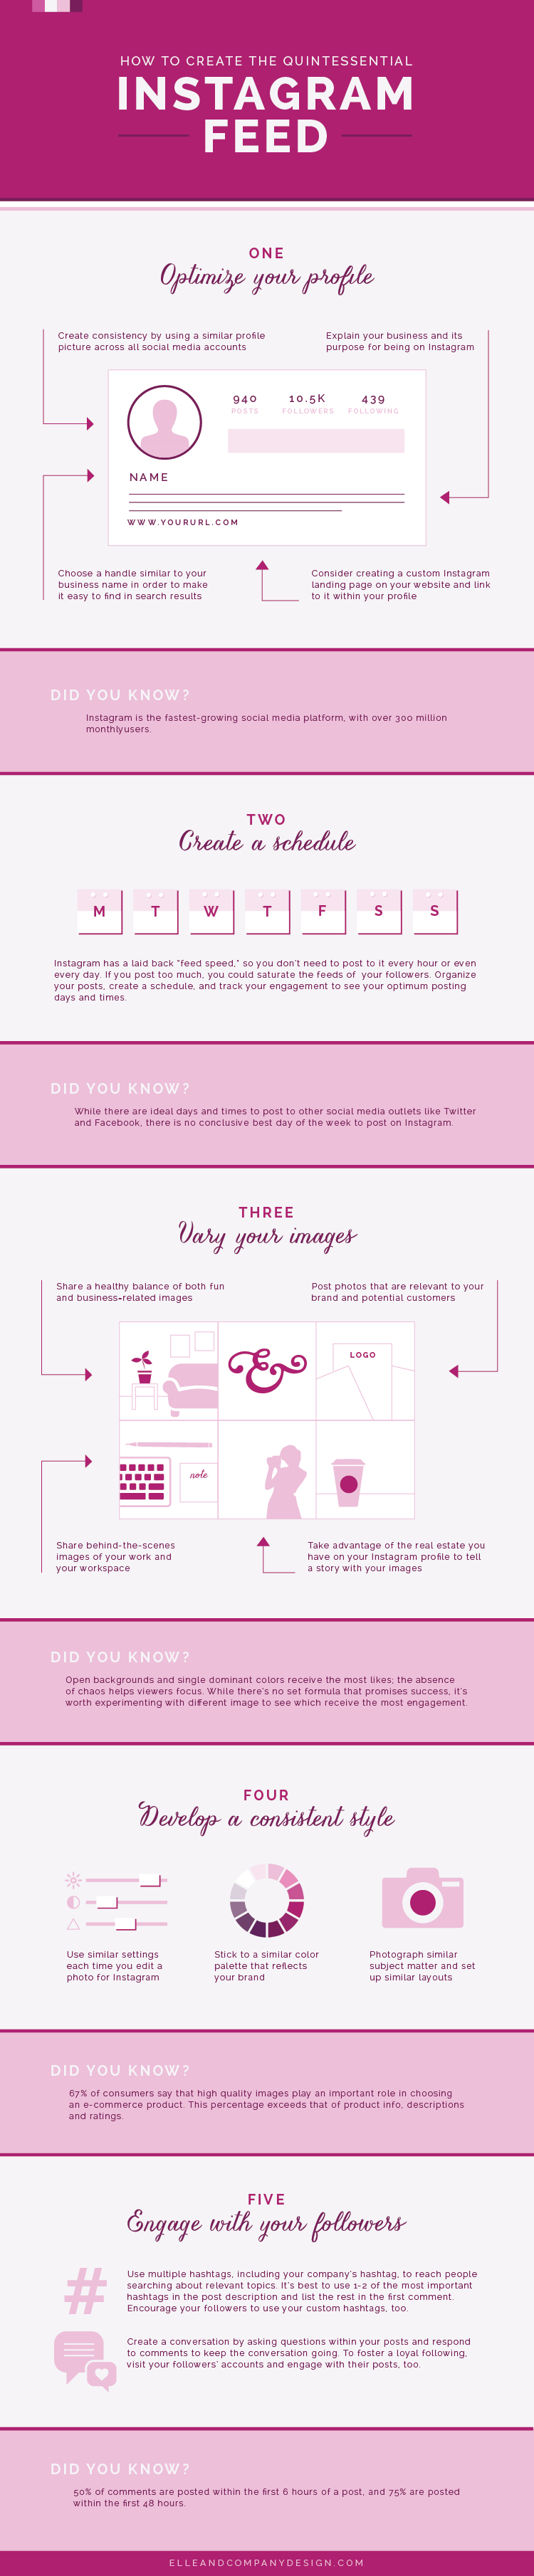 How to Create an Effective Instagram Feed